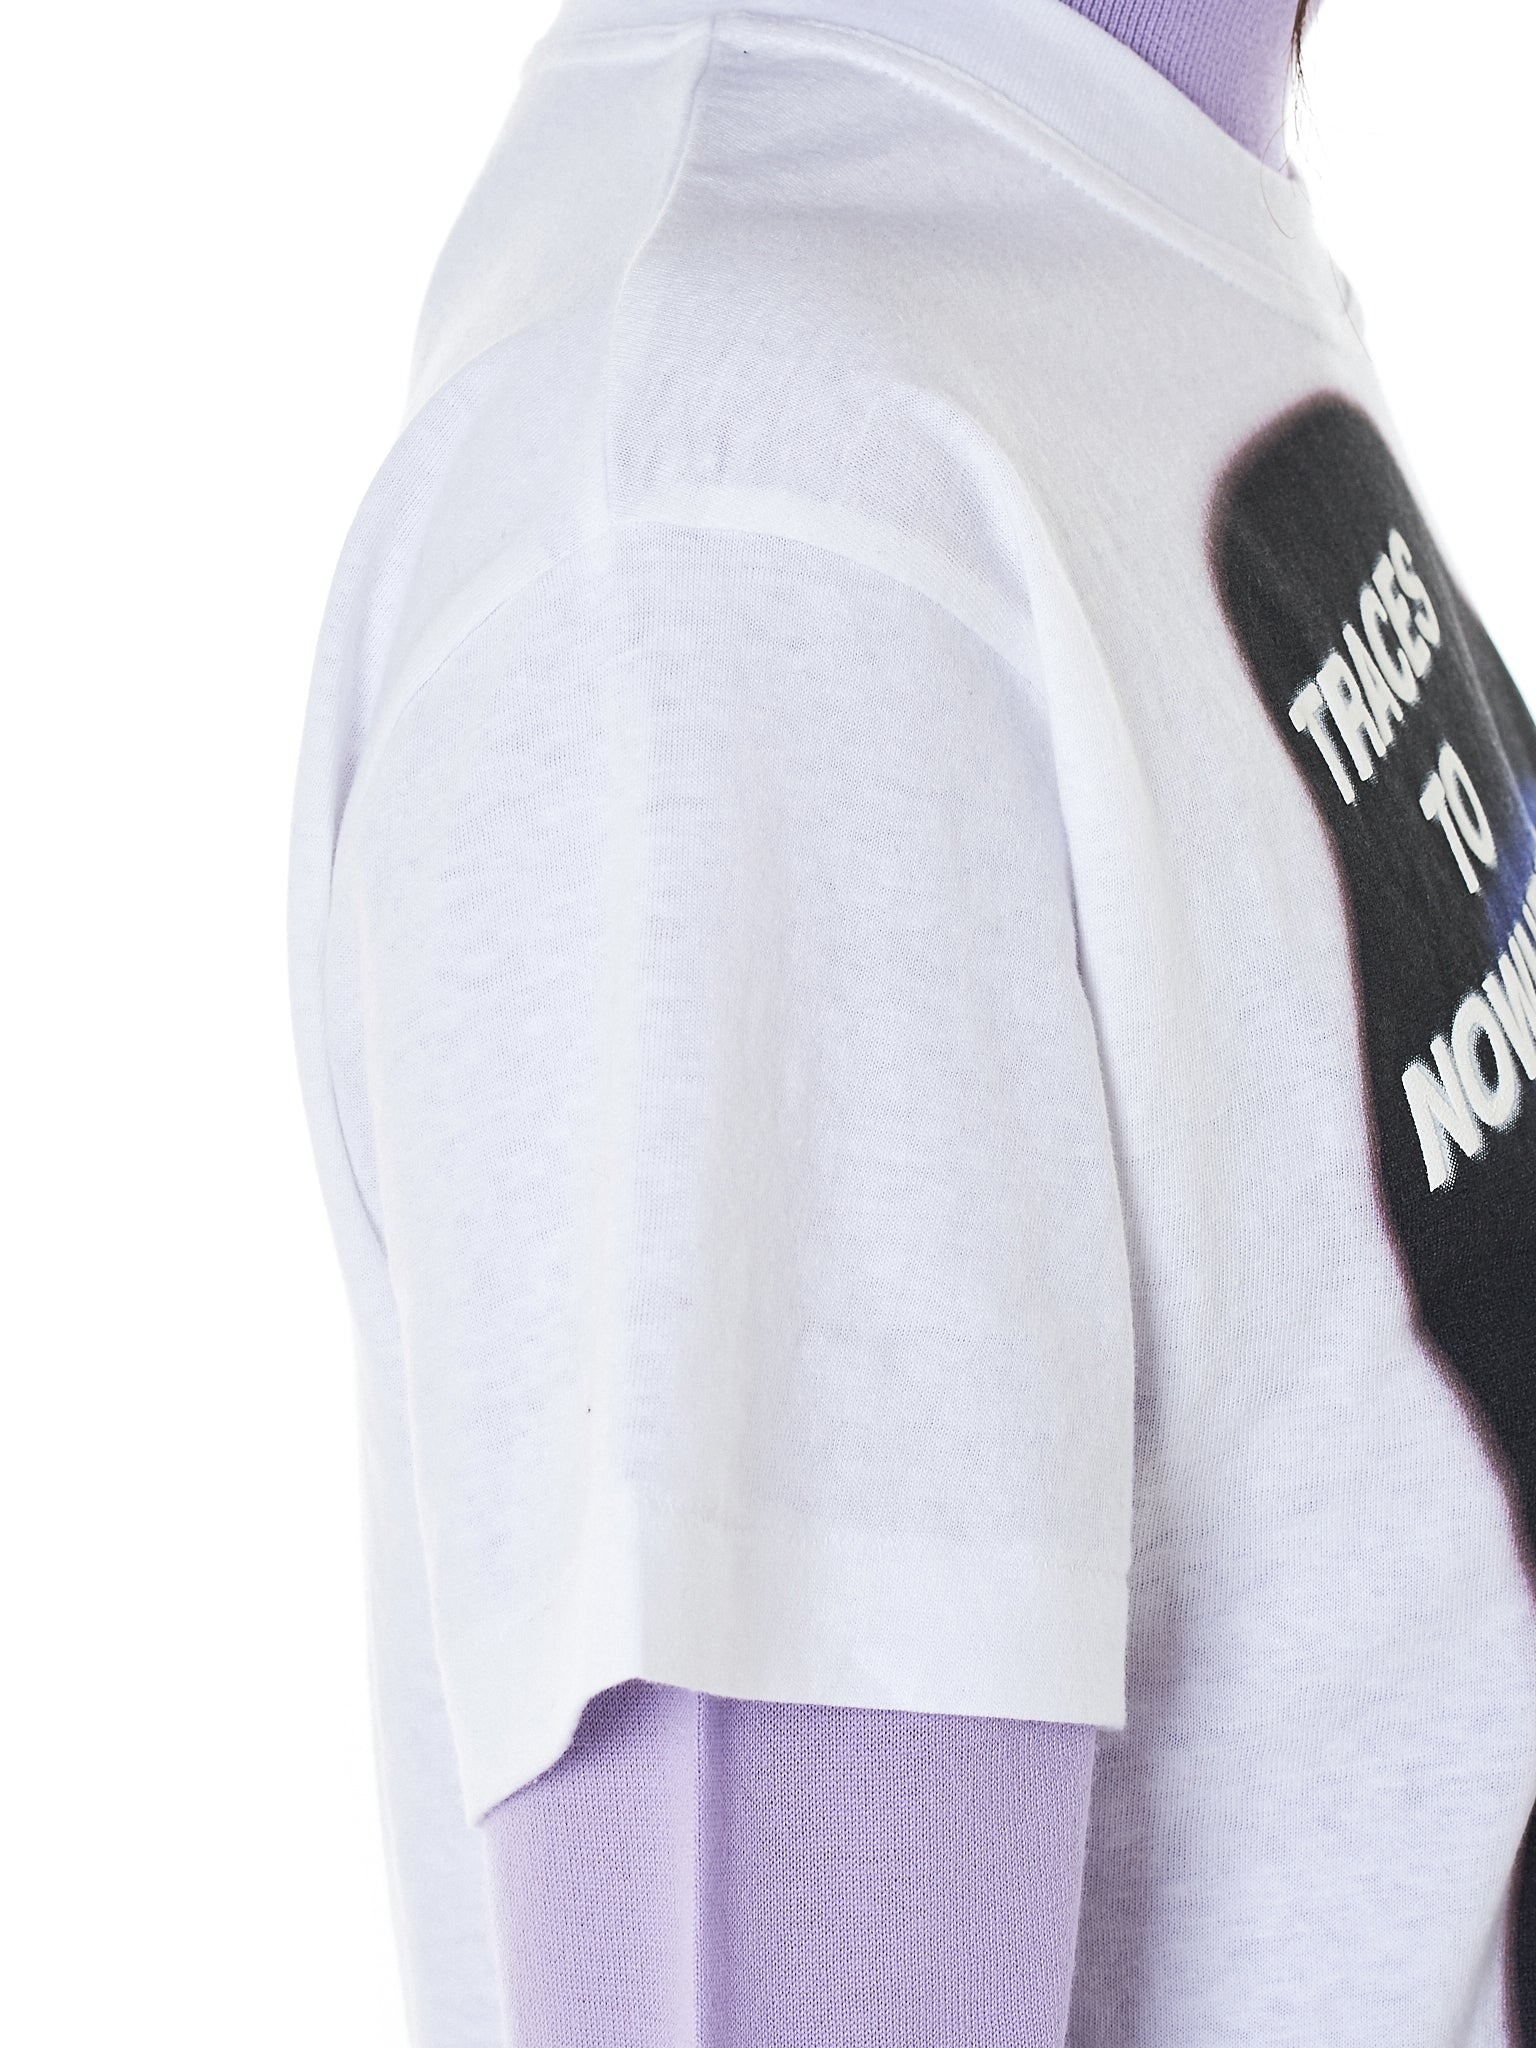 Ambush Tee Shirt - Hlorenzo Shoulder Detail